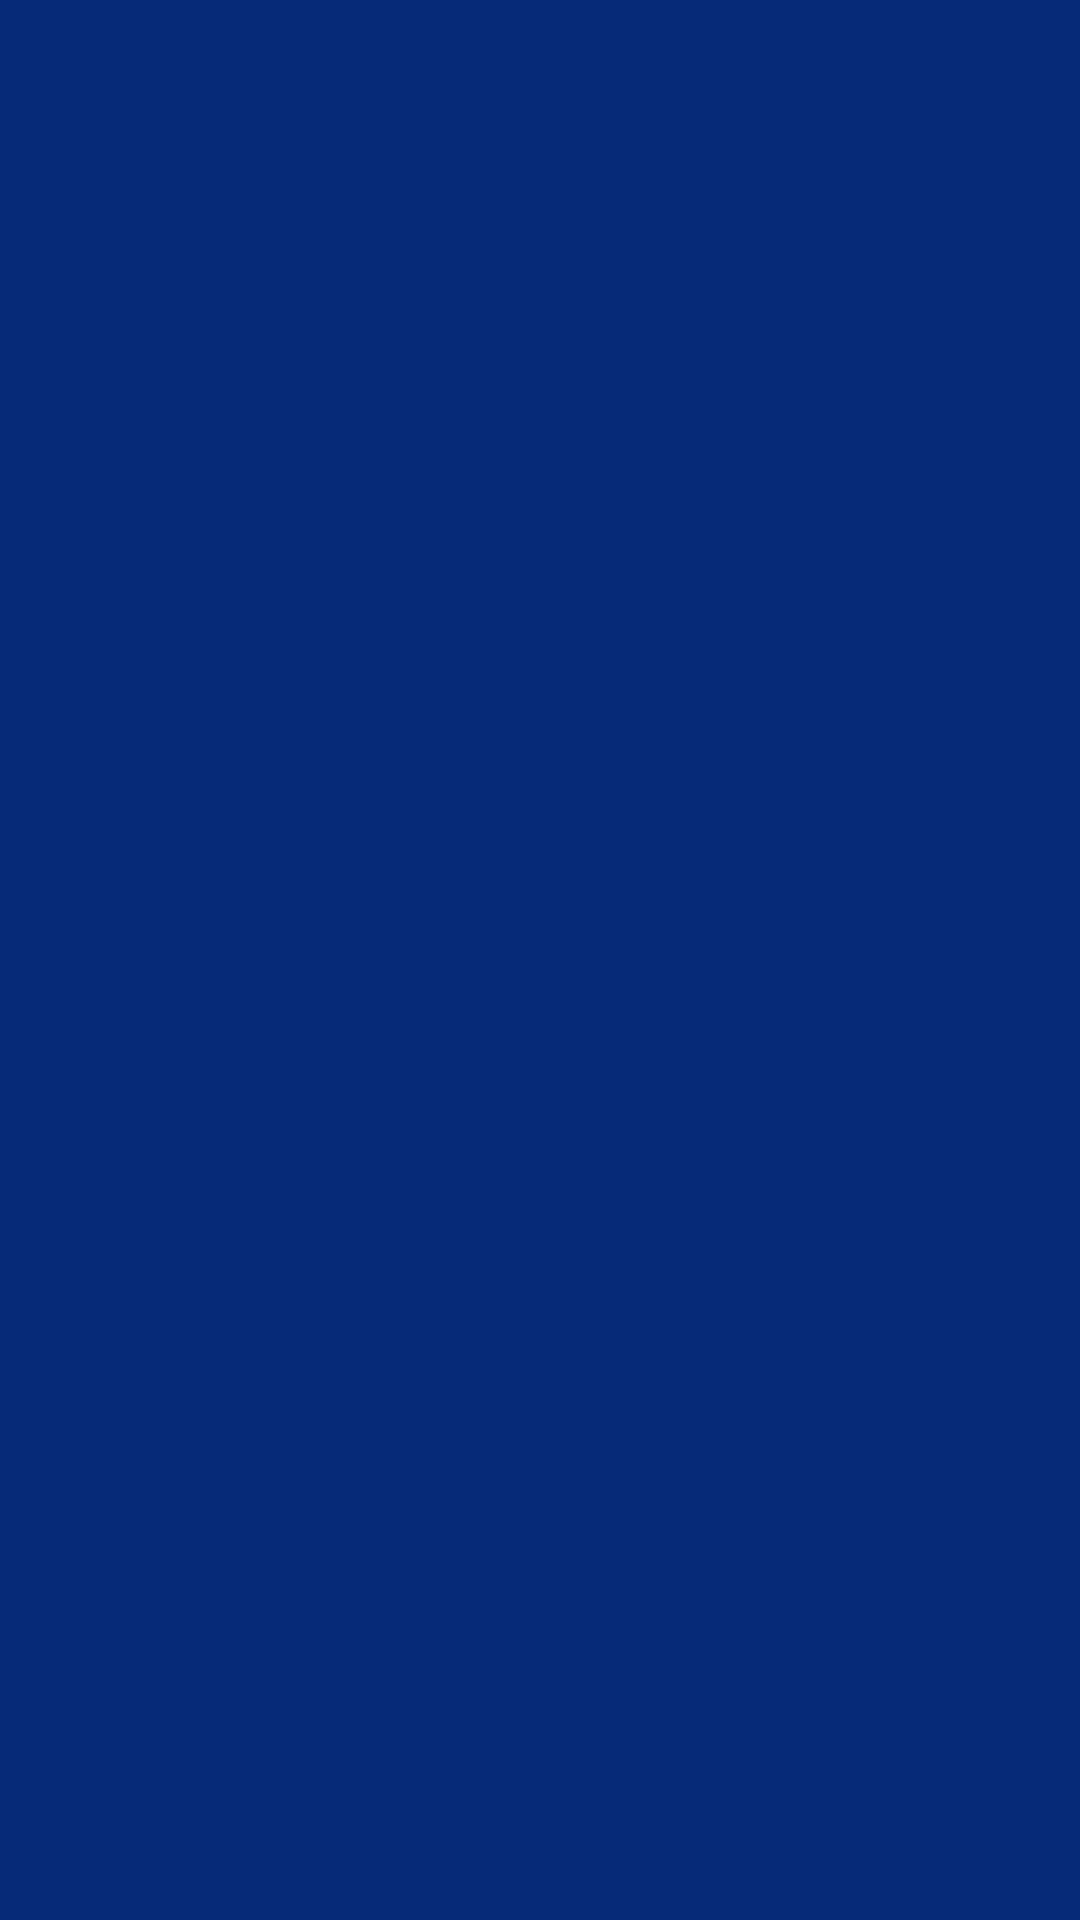 1080x1920 Catalina Blue Solid Color Background